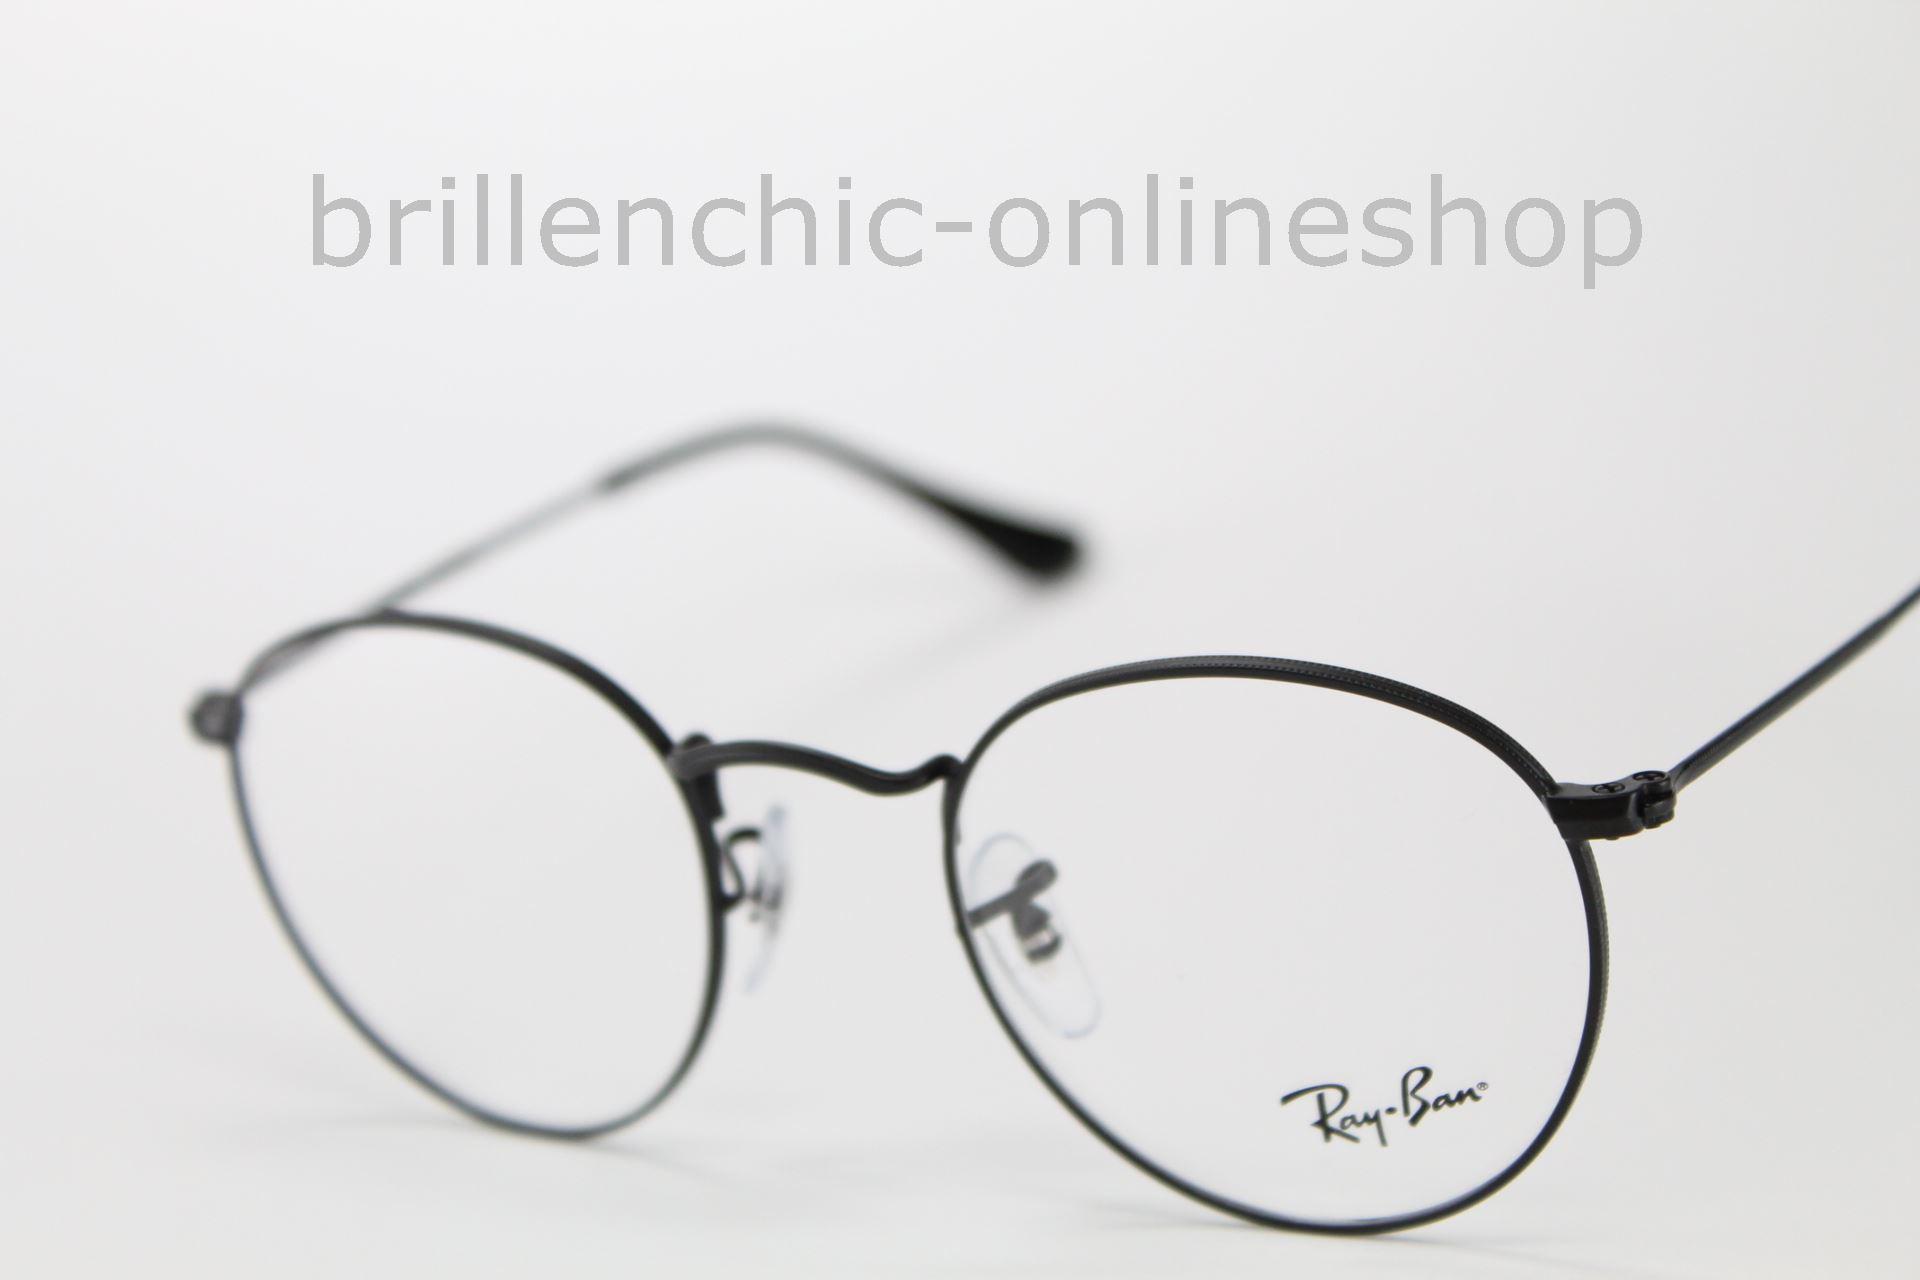 423ee57c5c Brillenchic-onlineshop in Berlin - Ray Ban RB 3447V 3447 2503 ROUND ...